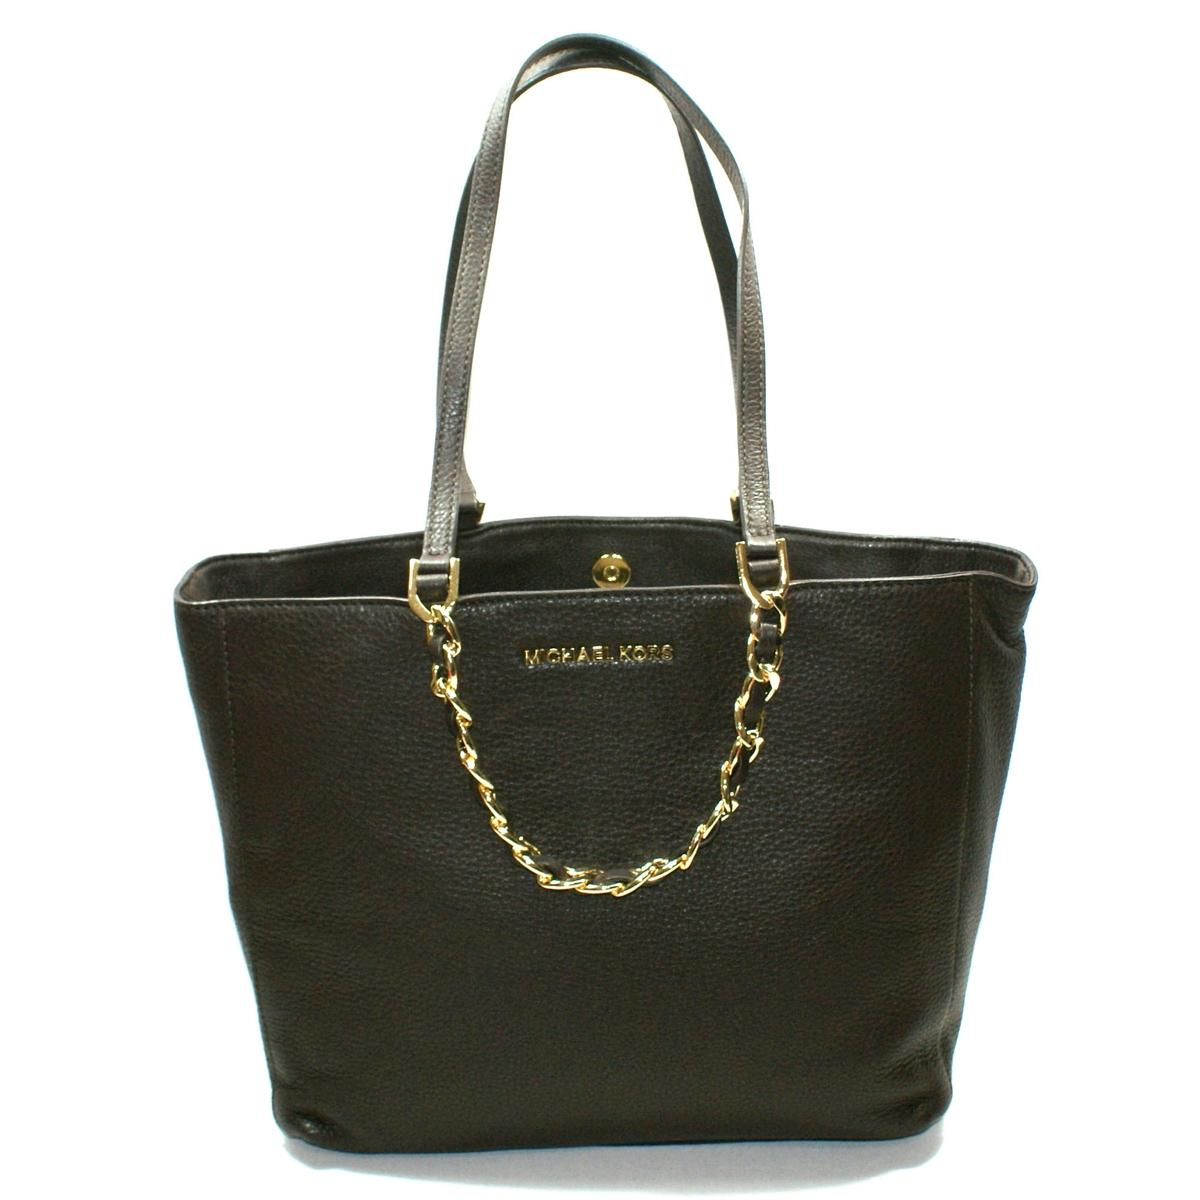 62c6589cdb2b68 Home · Michael Kors · Harper Large East/ West Genuine Leather Tote Dark  Chocolate. CLICK THUMBNAIL TO ZOOM. Found In: Handbags